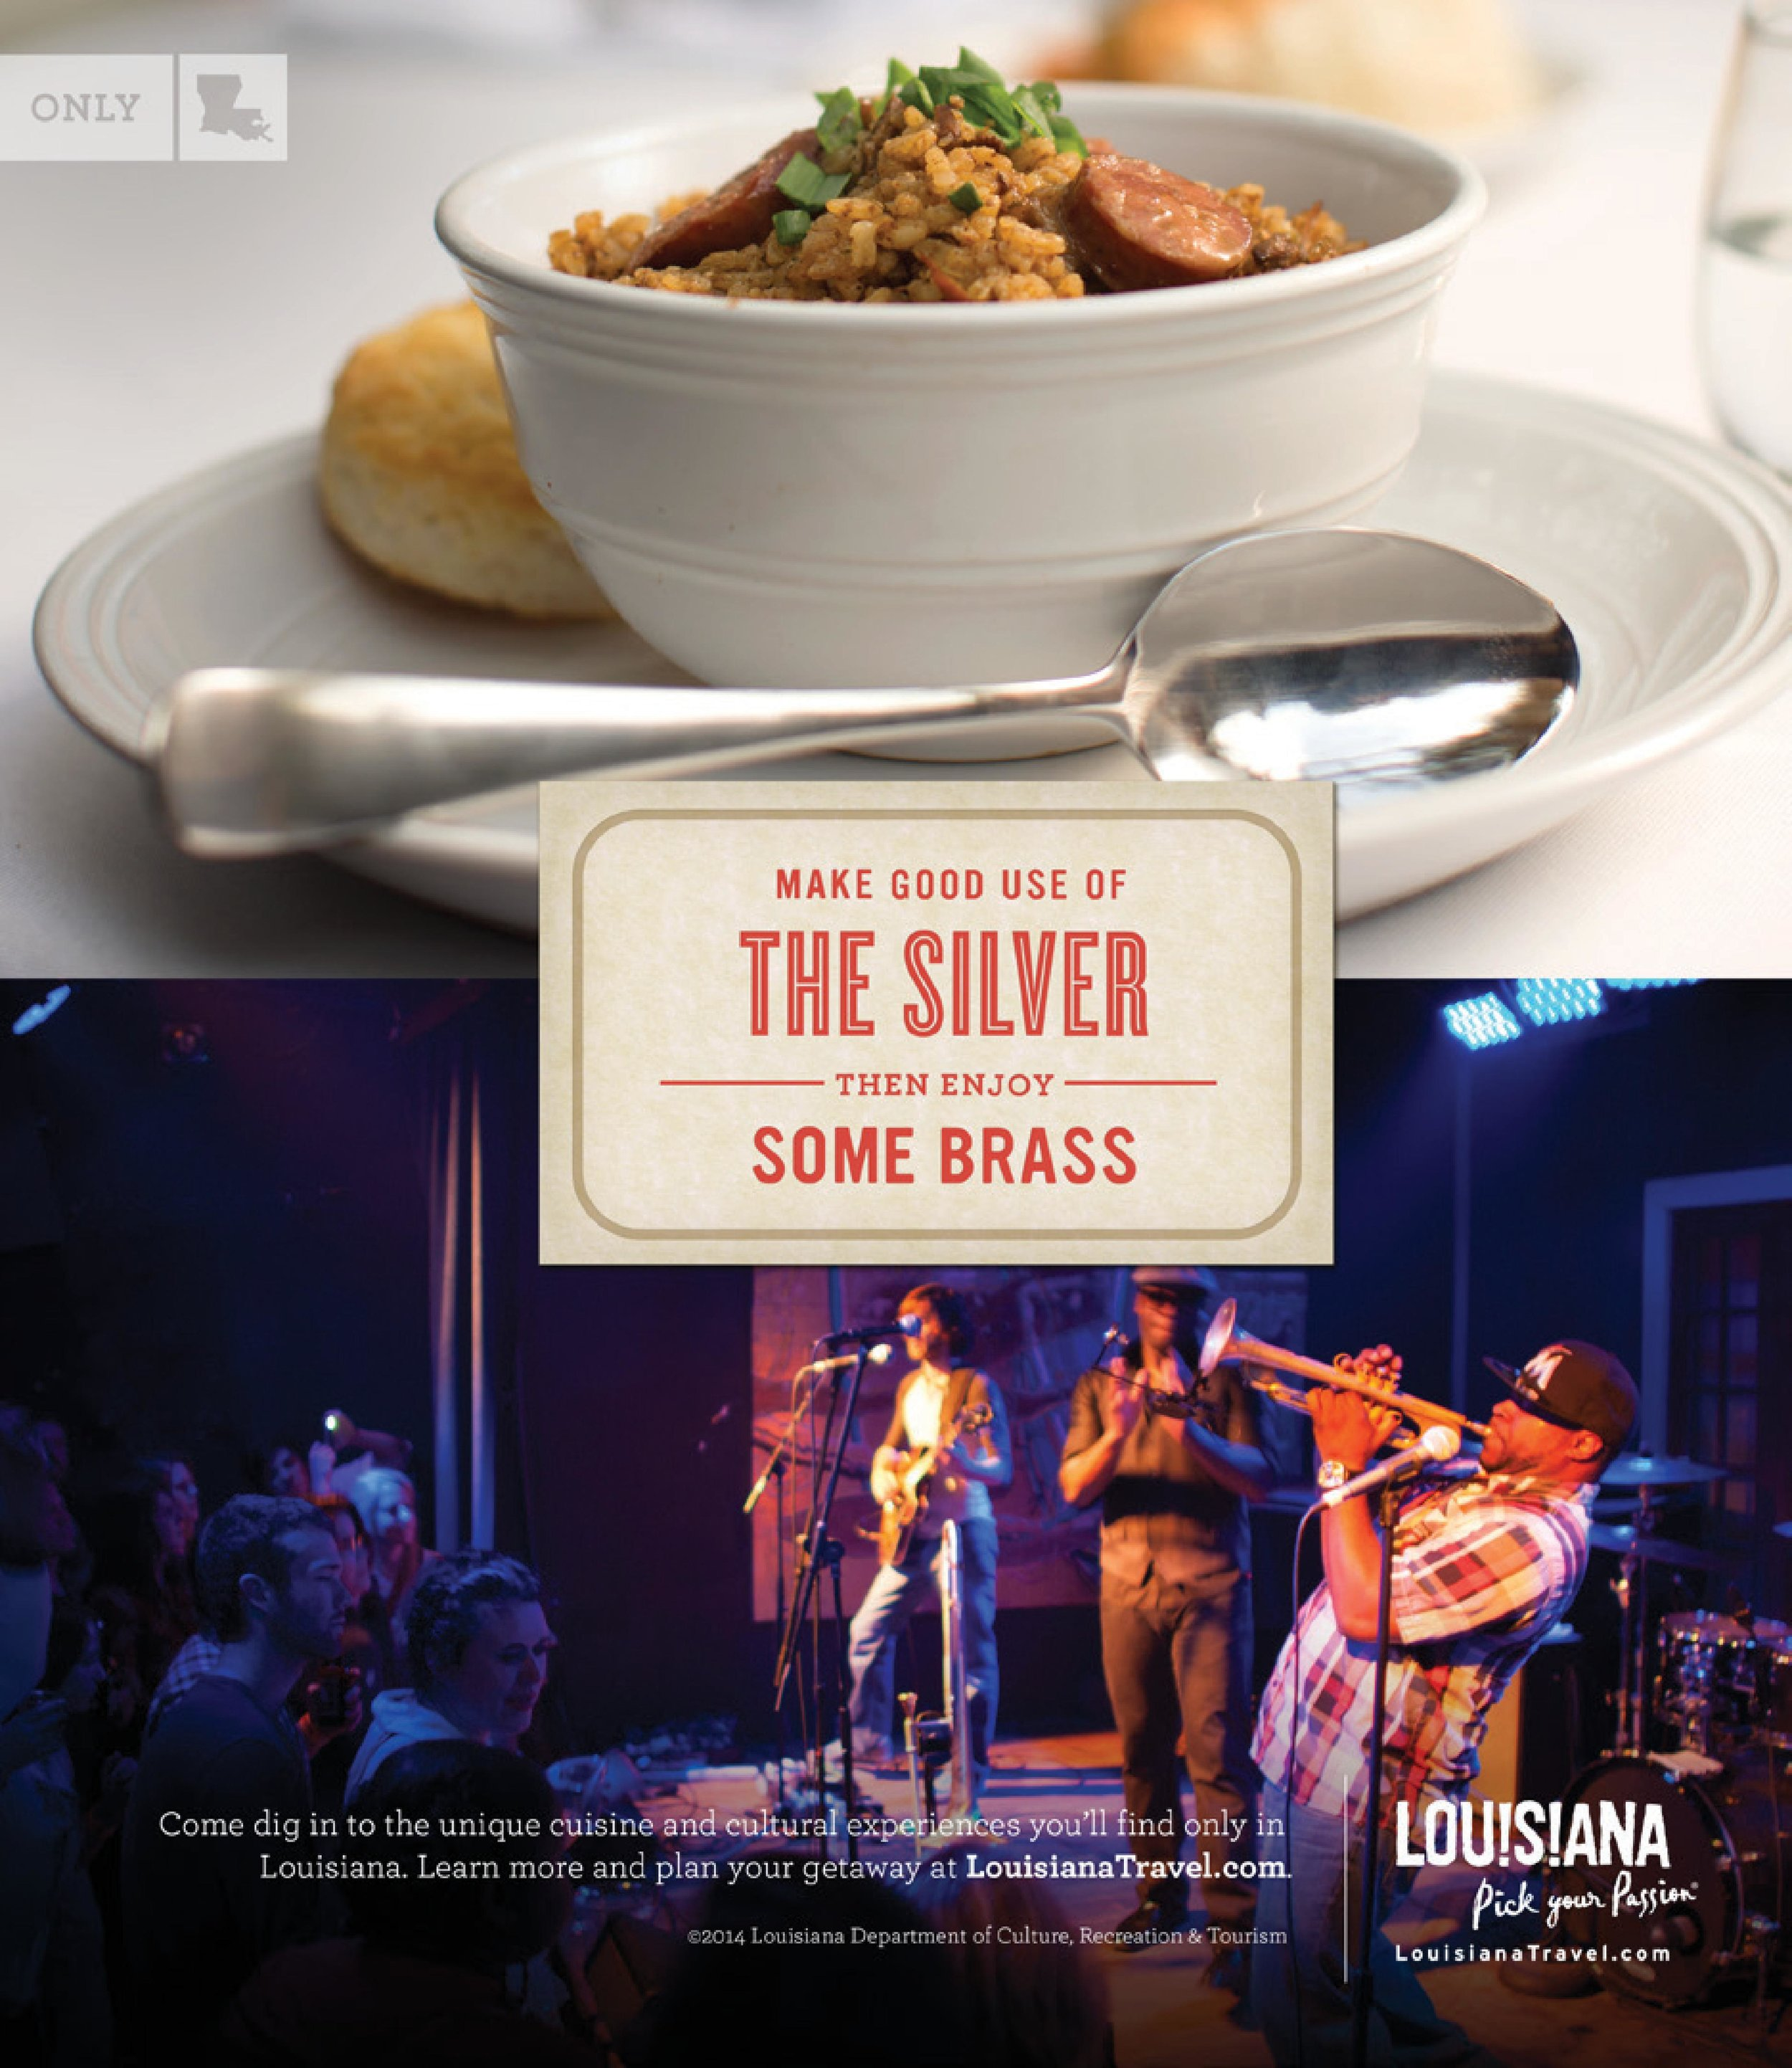 Louisiana Office of Tourism: Culinary Campaign